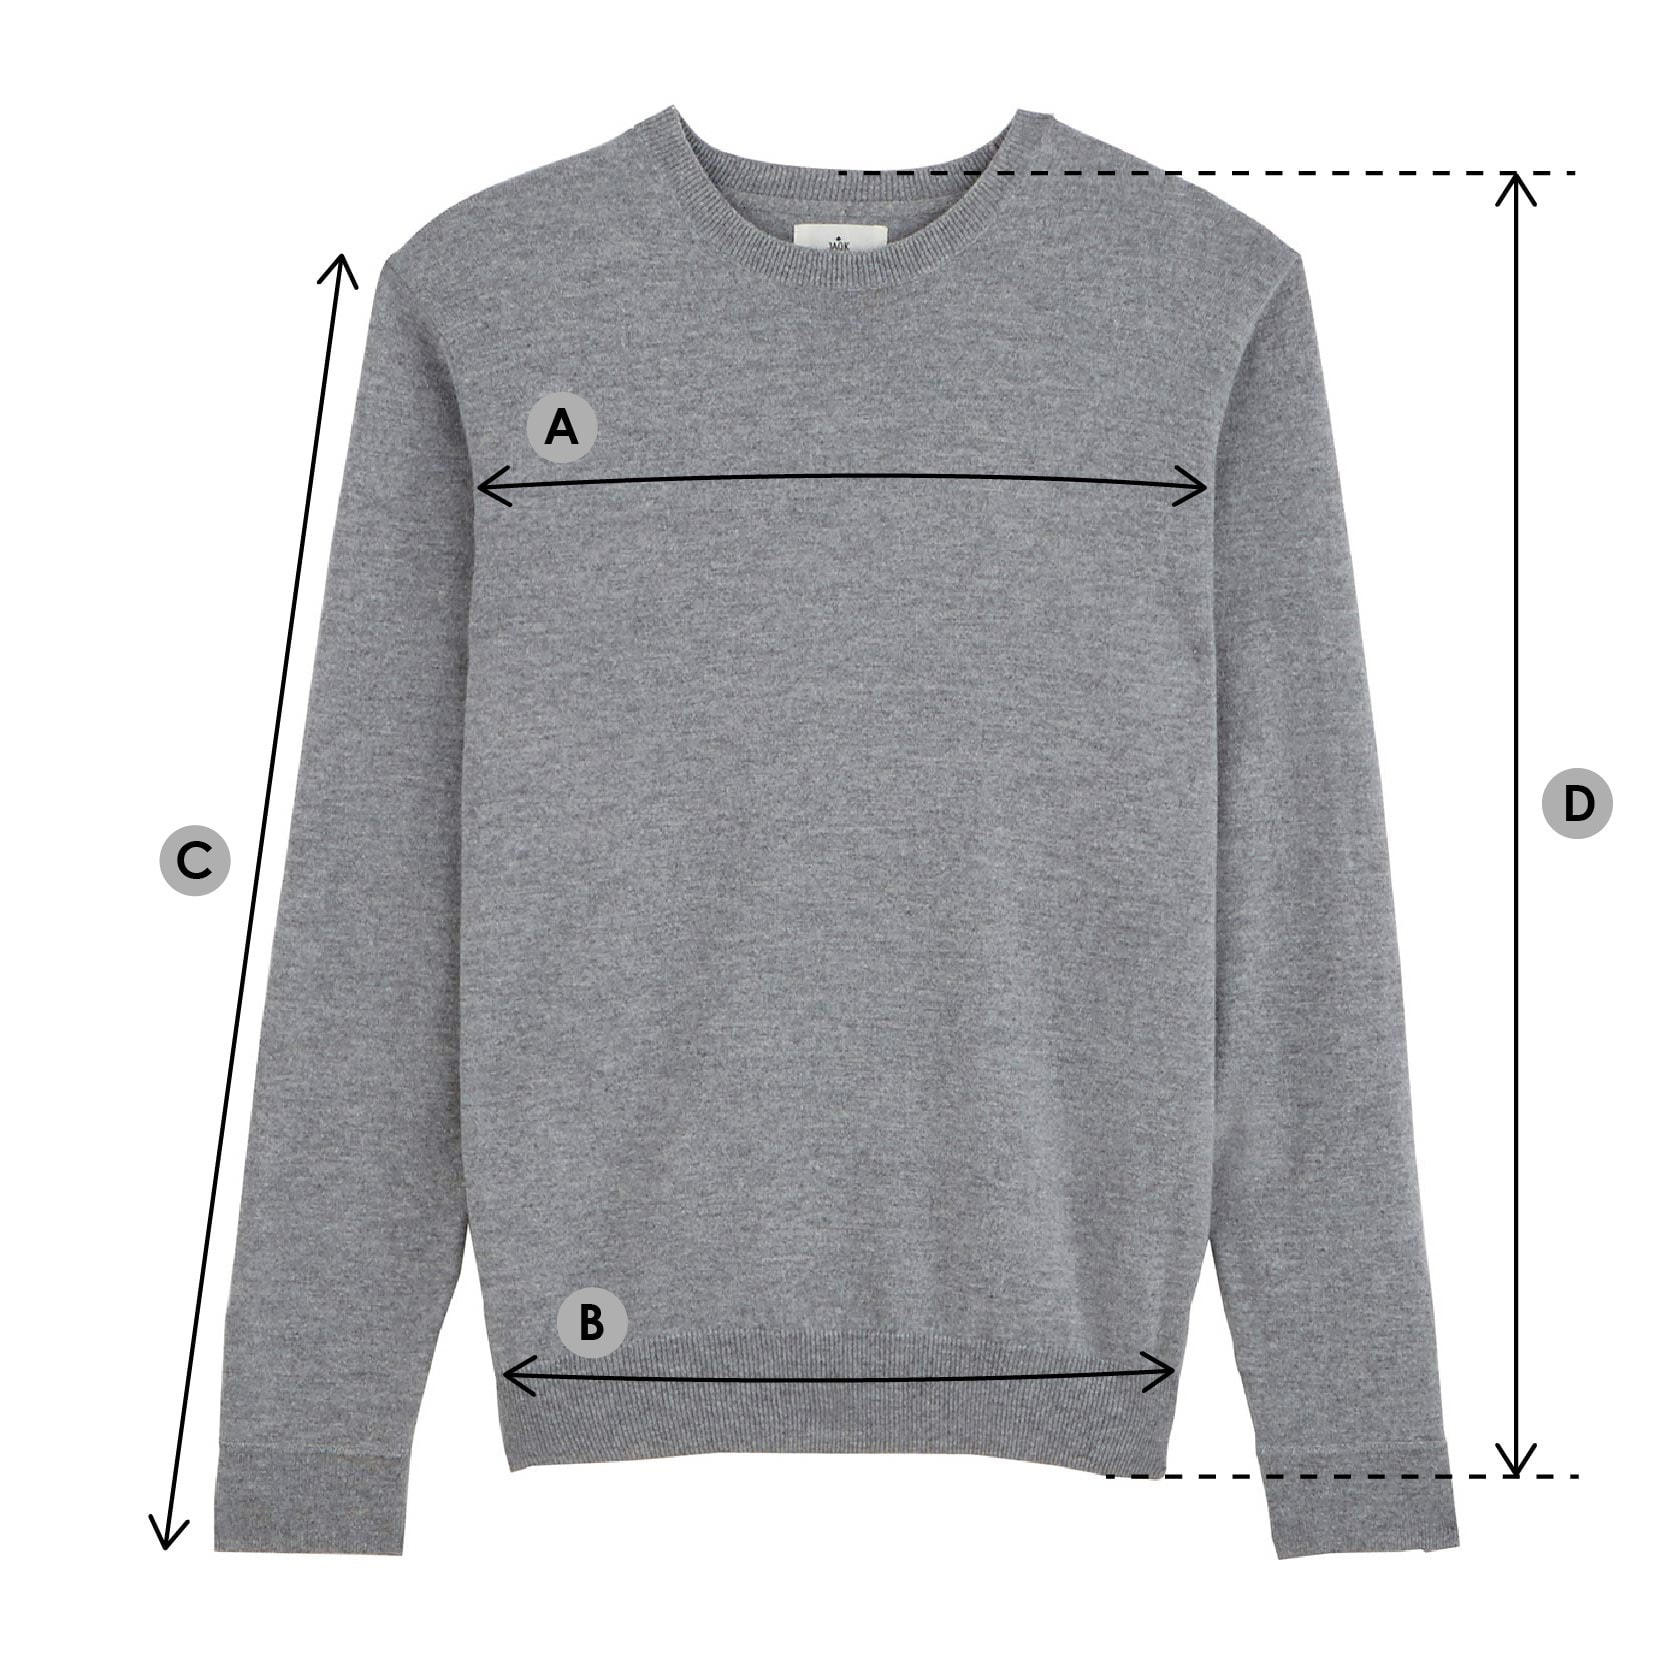 Le pull guide tailles